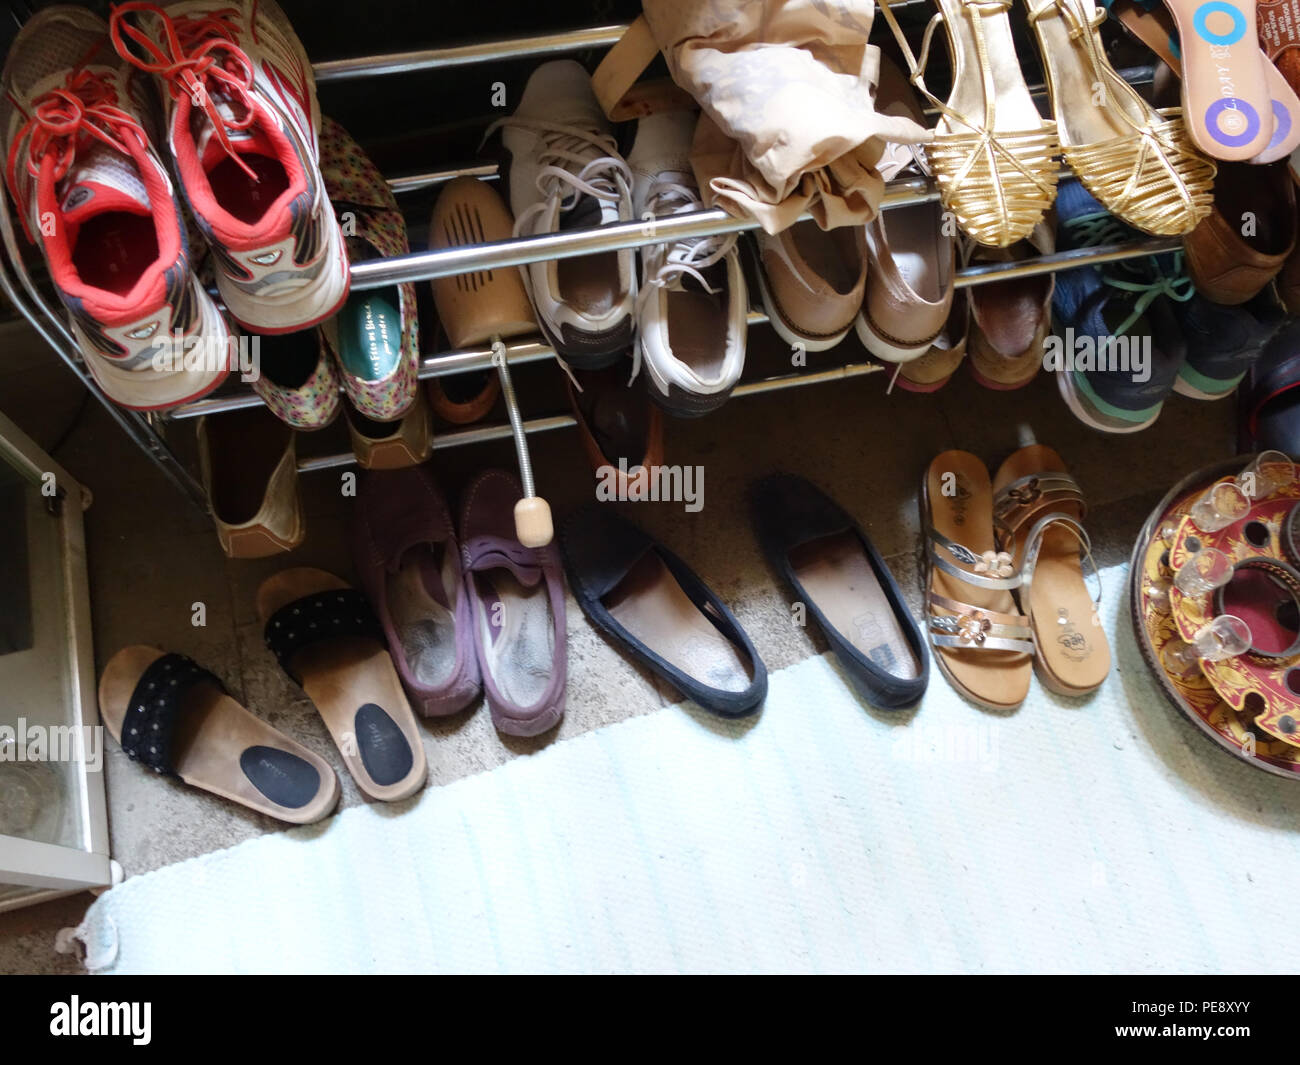 f120a5ead587f8 Shoe rack collection in a 20 year old girls bedroom in a large French house  -